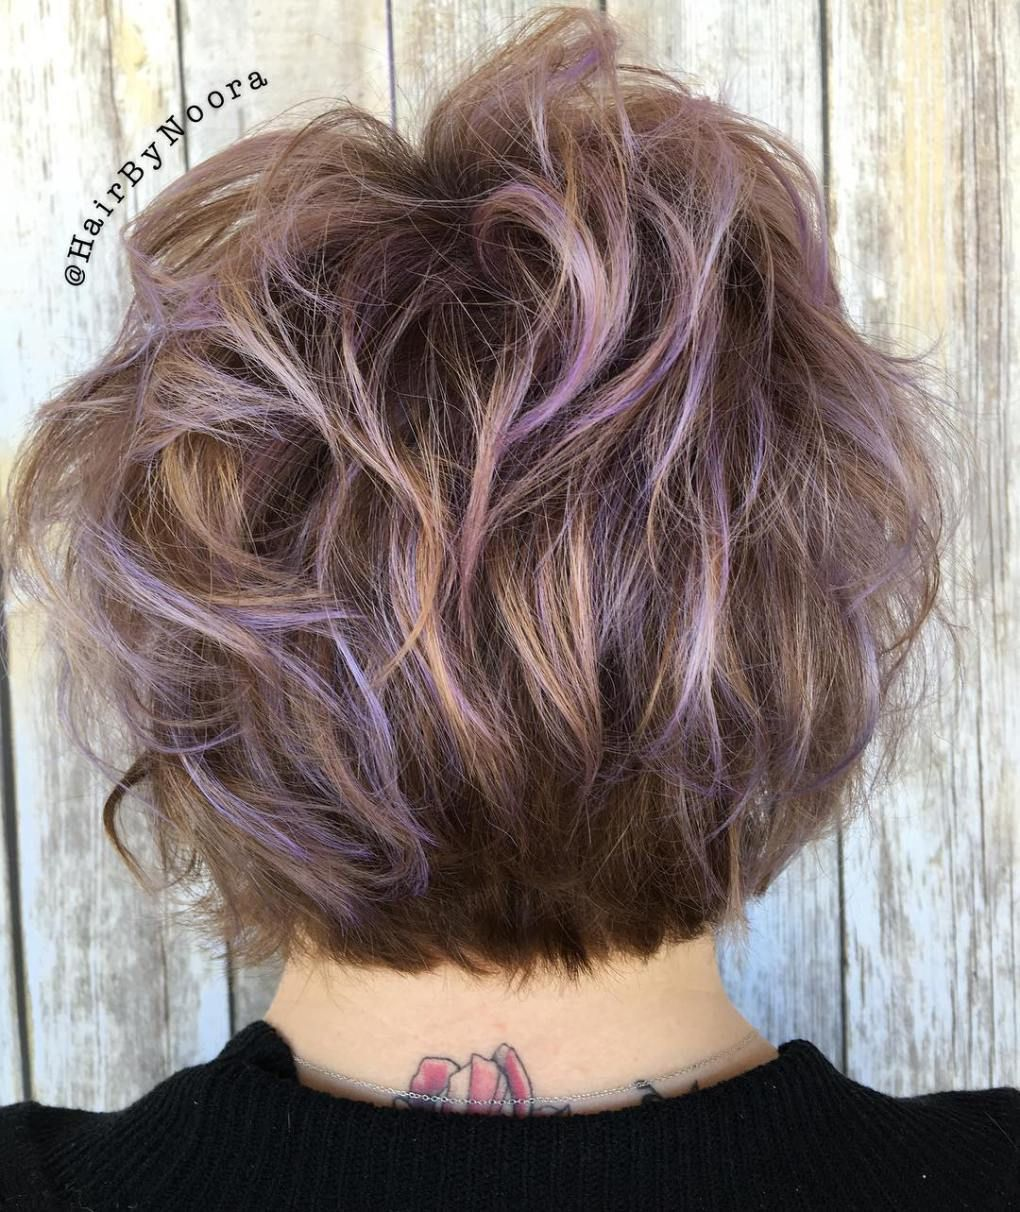 50 Ideas For Light Brown Hair With Highlights And Lowlights Purple Highlights Brown Hair Brown Hair With Highlights Highlights Brown Hair Short